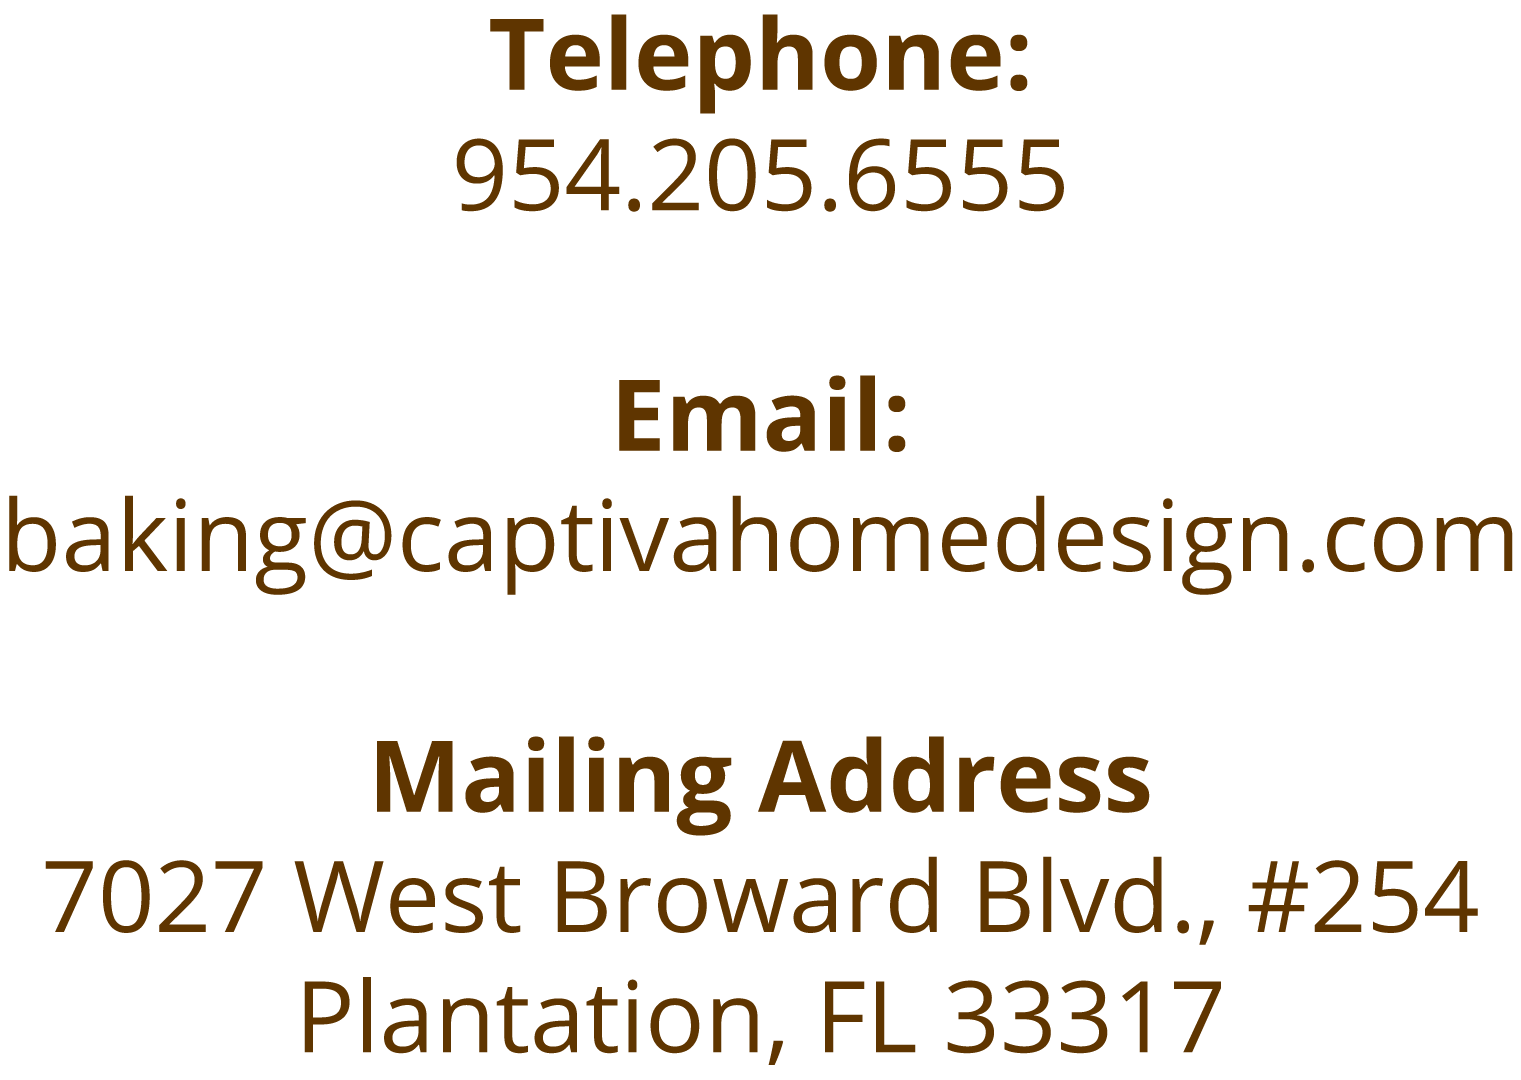 bridget-king-captiva-home-design-contact-phone-number-mailing-and-email-address.png